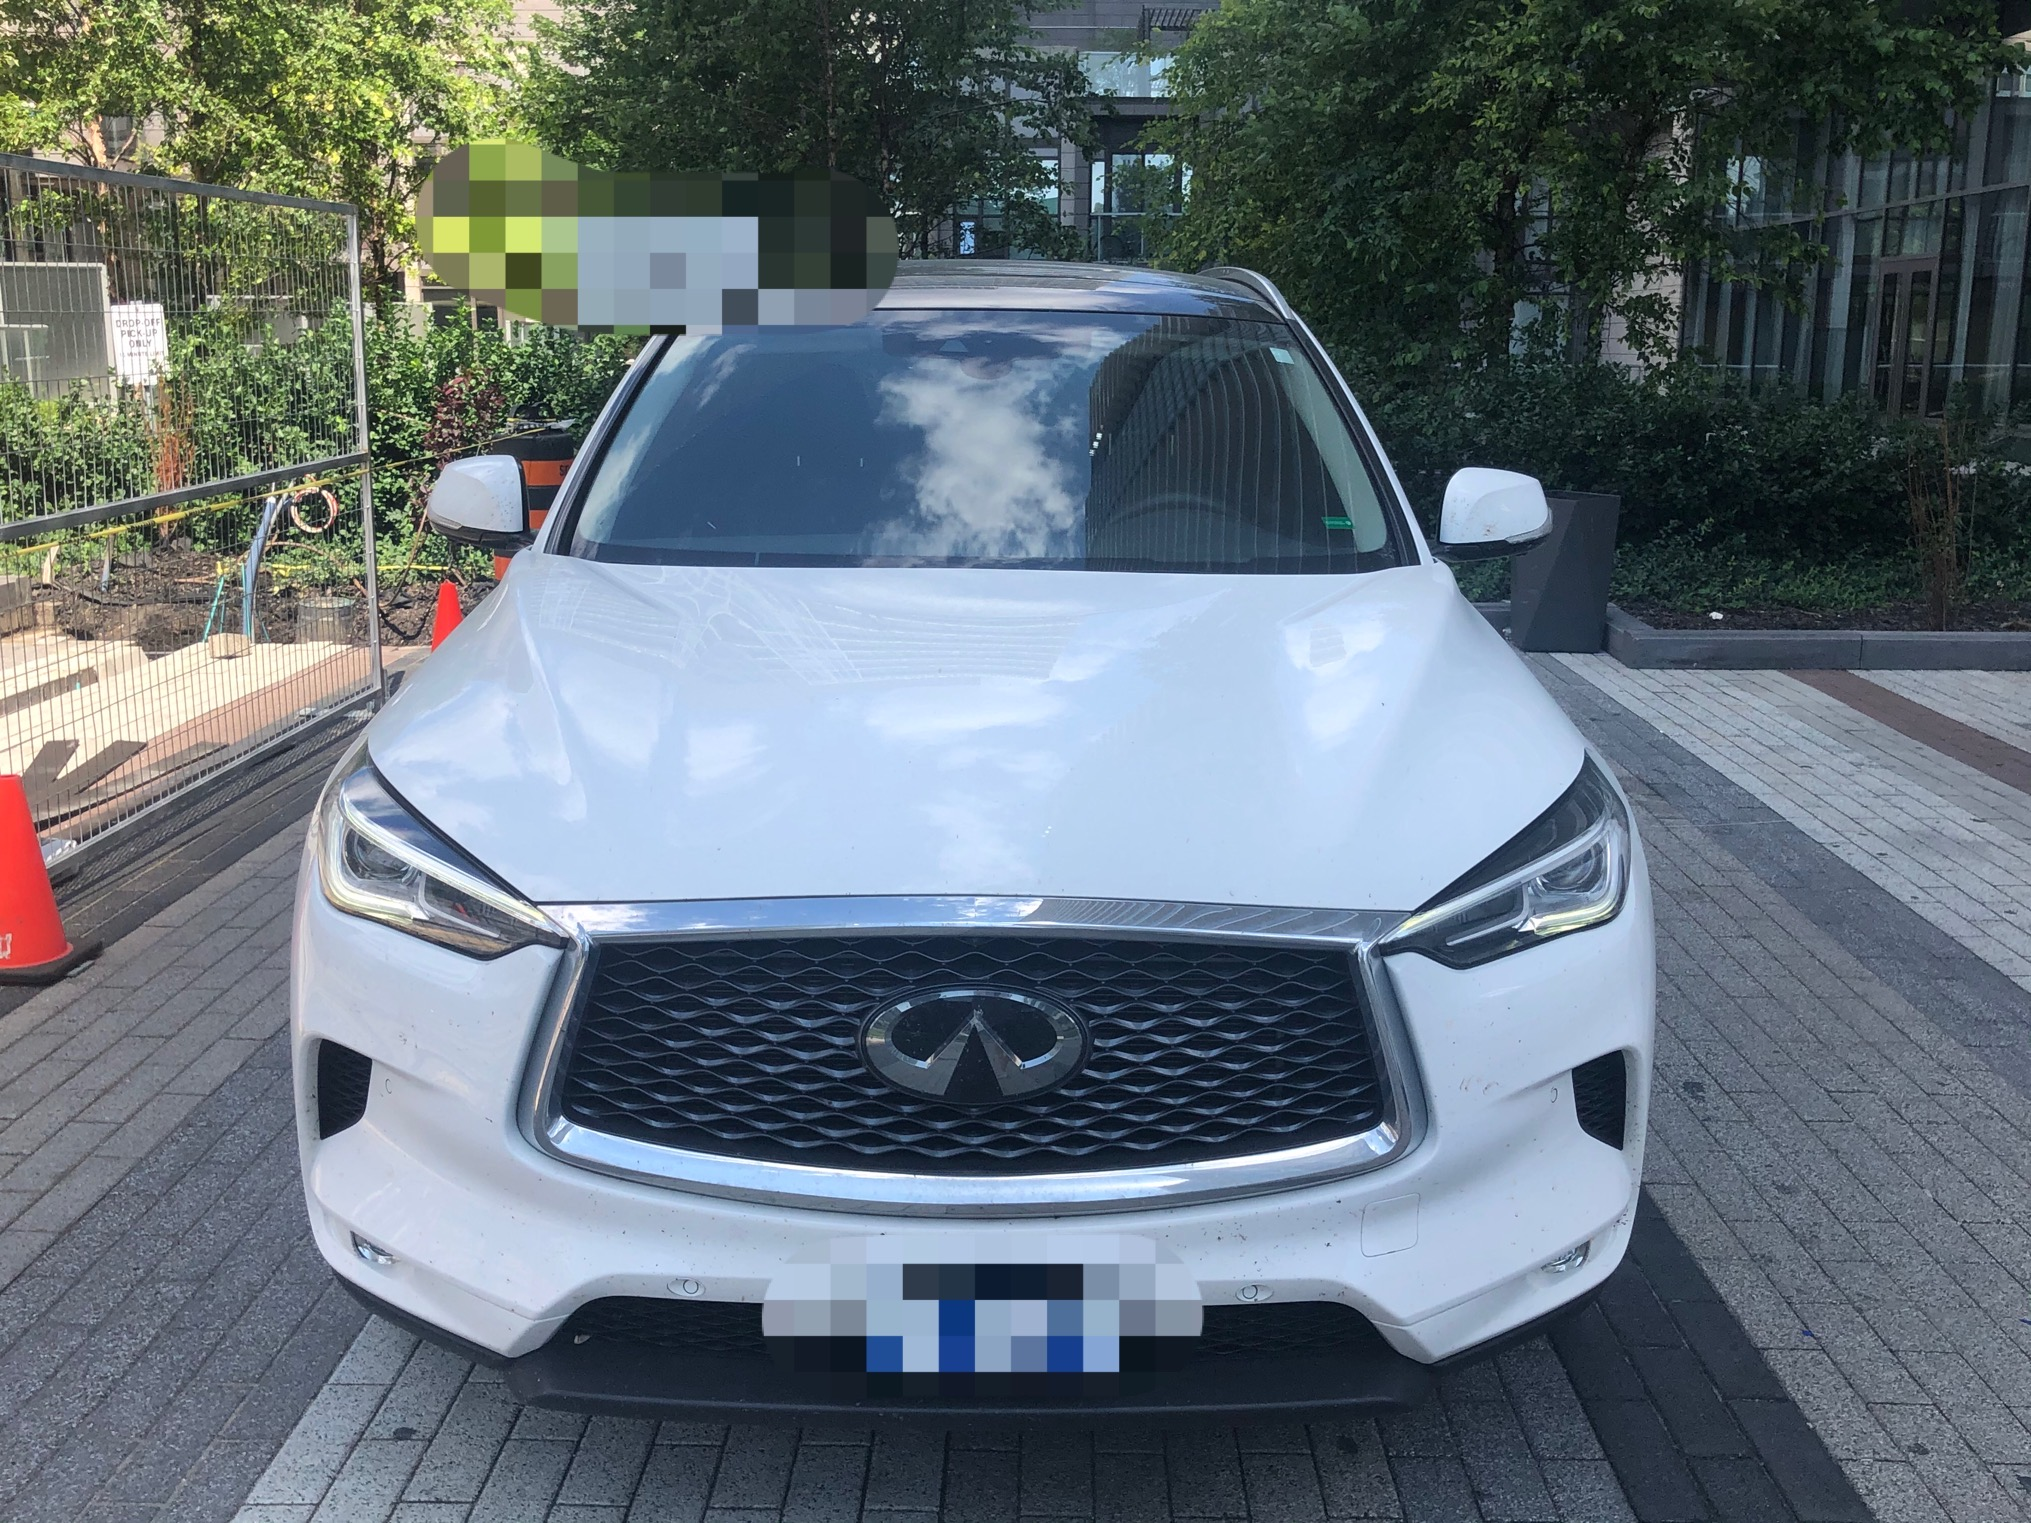 2020 Infiniti QX56 Proactive full